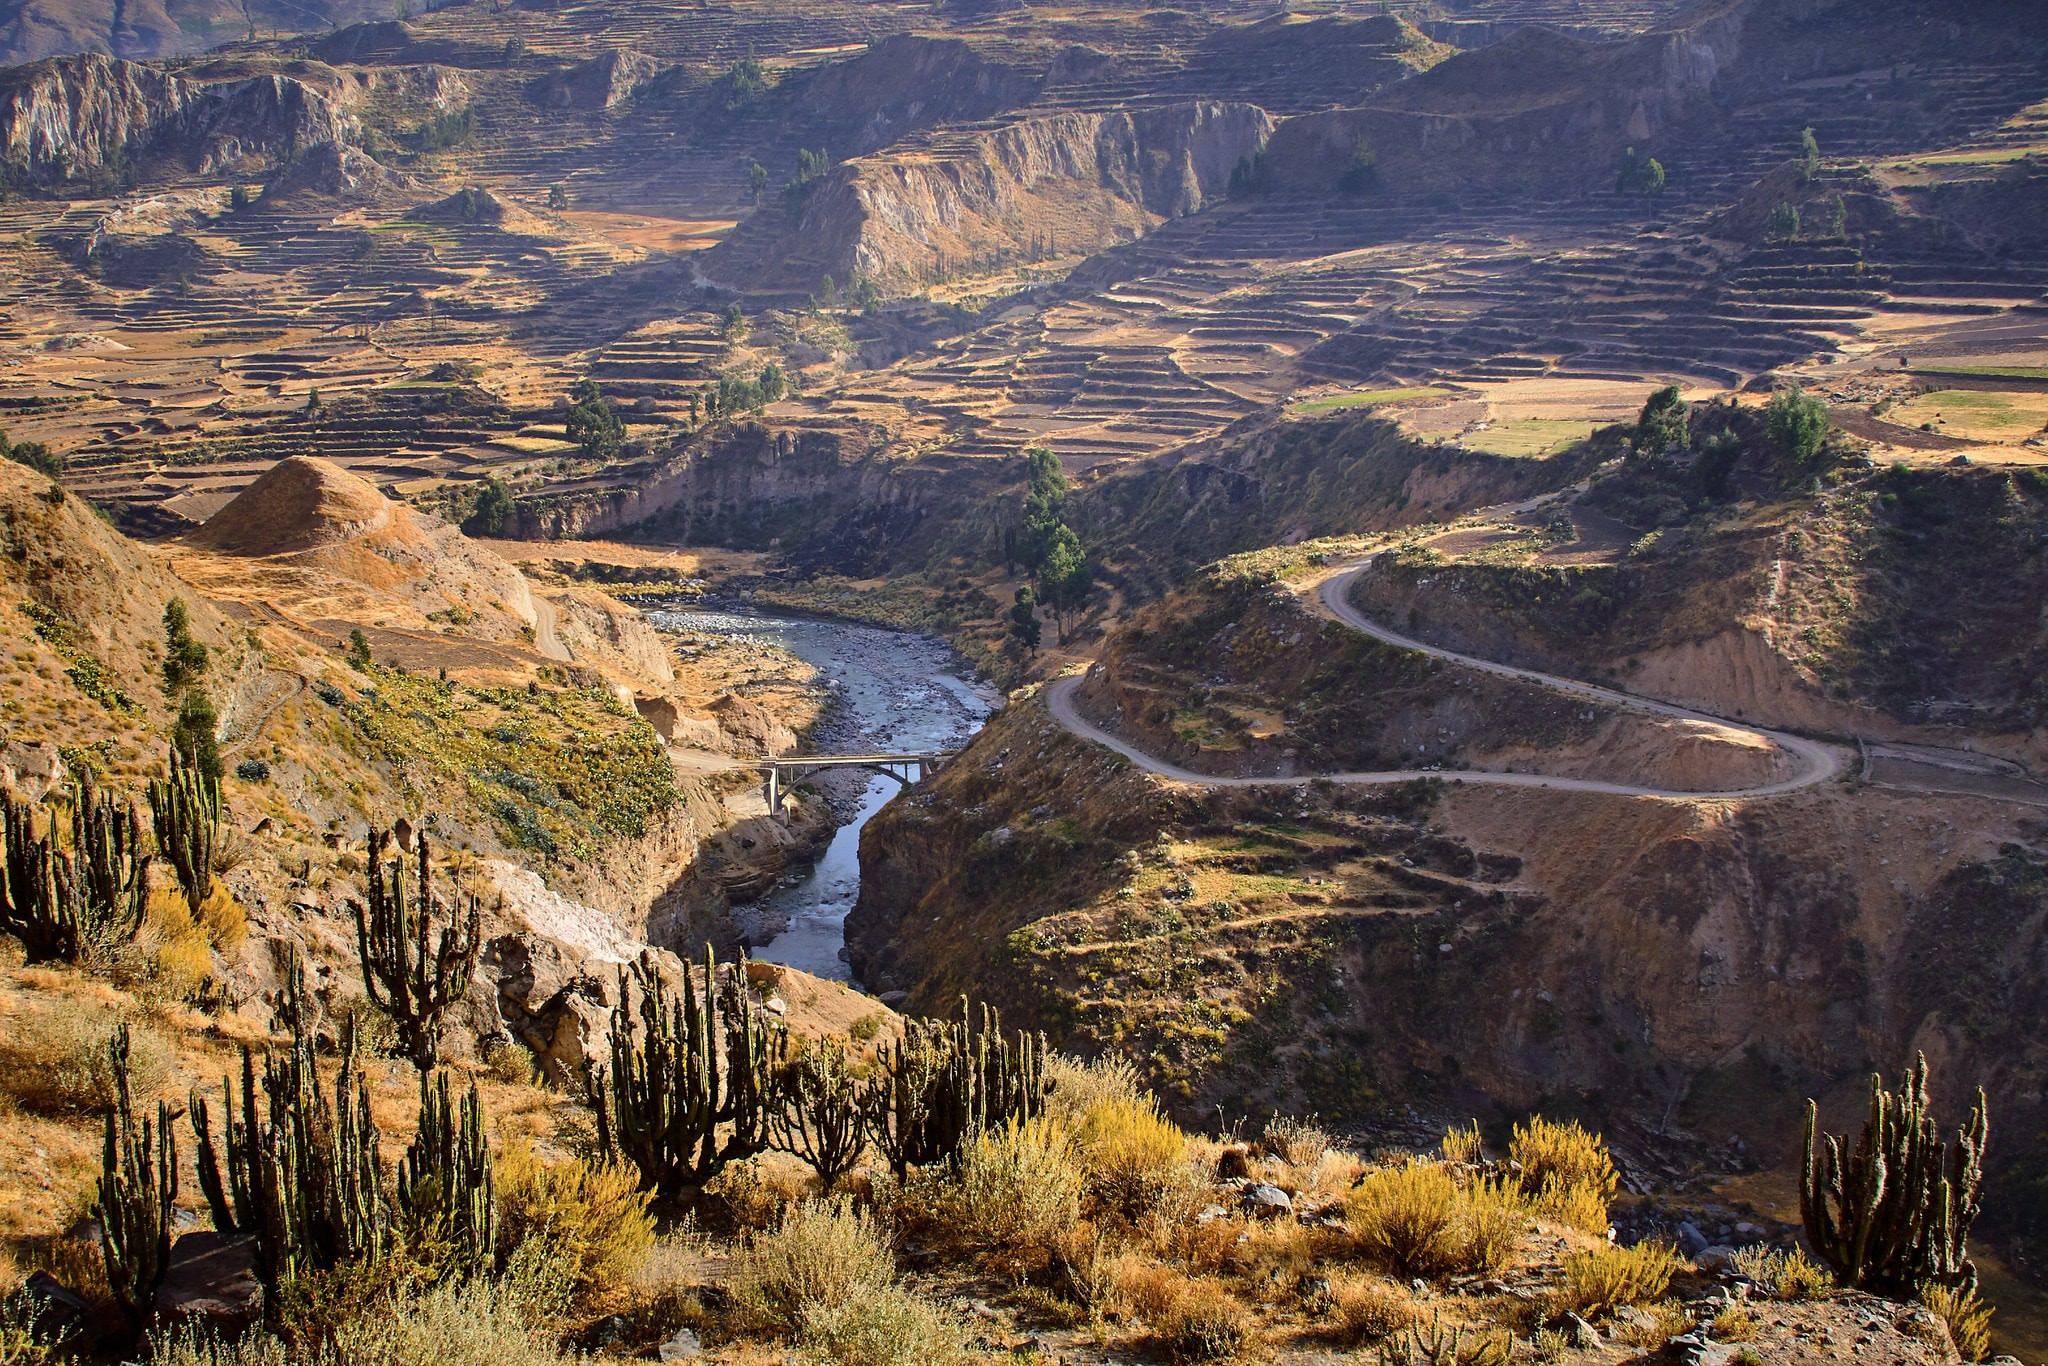 The Ultimate Trekking Guide to the Colca Canyon, Peru